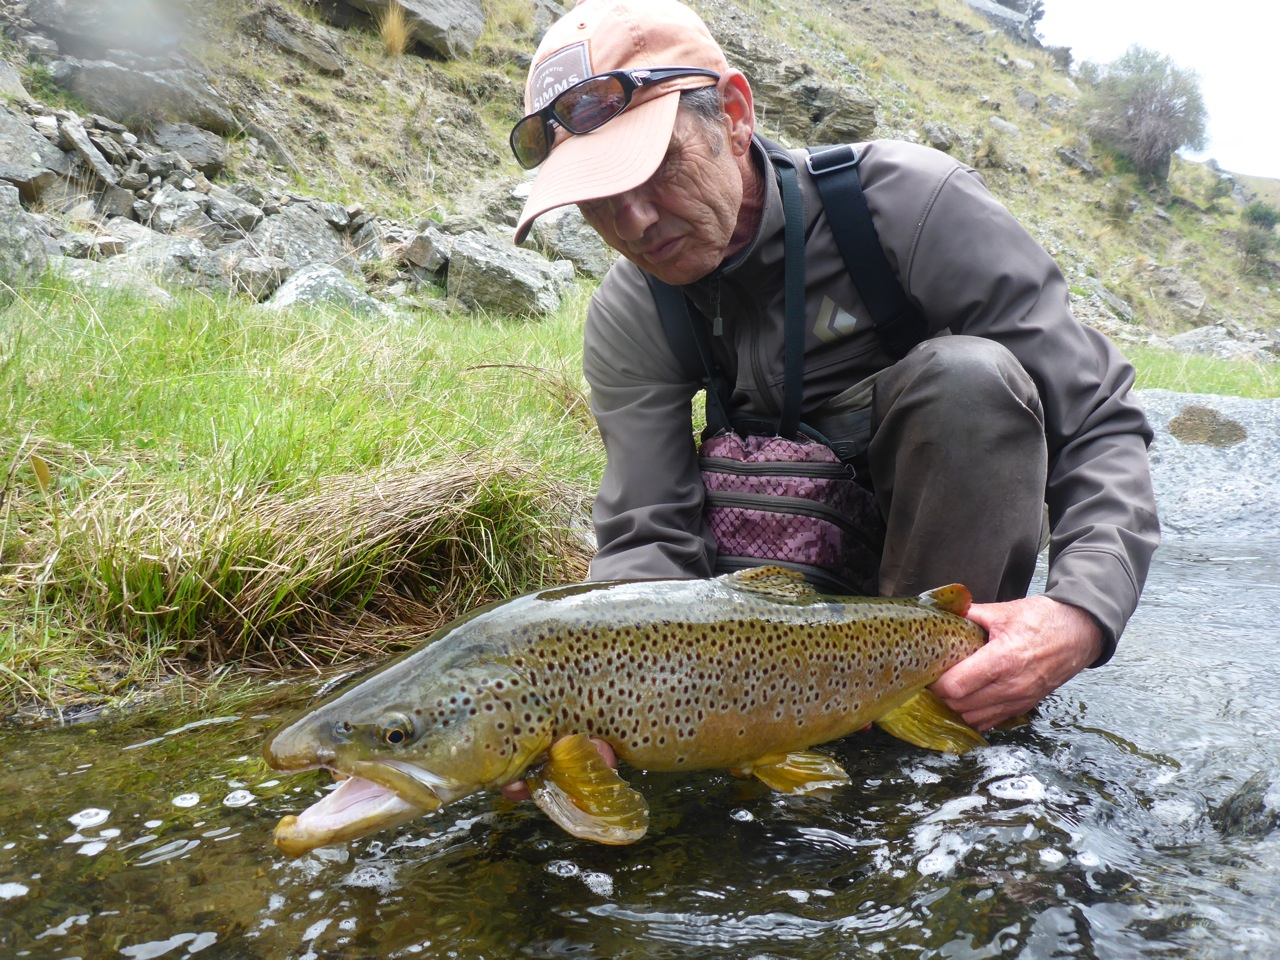 No stranger to big trout!